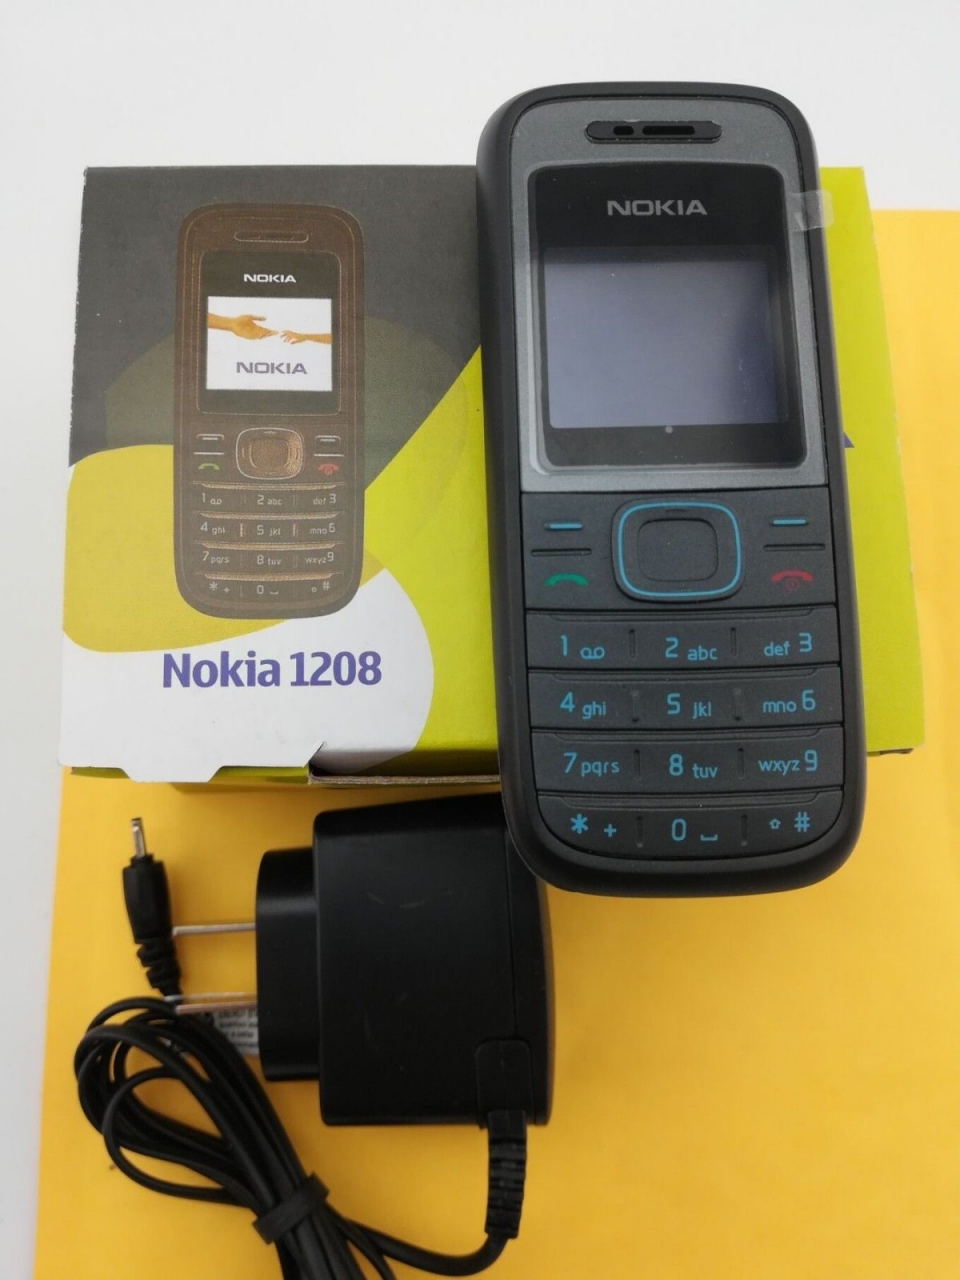 Refurbished phone Original Cellular Nokia 1208 Cheap phones GSM unlocked phone red 10